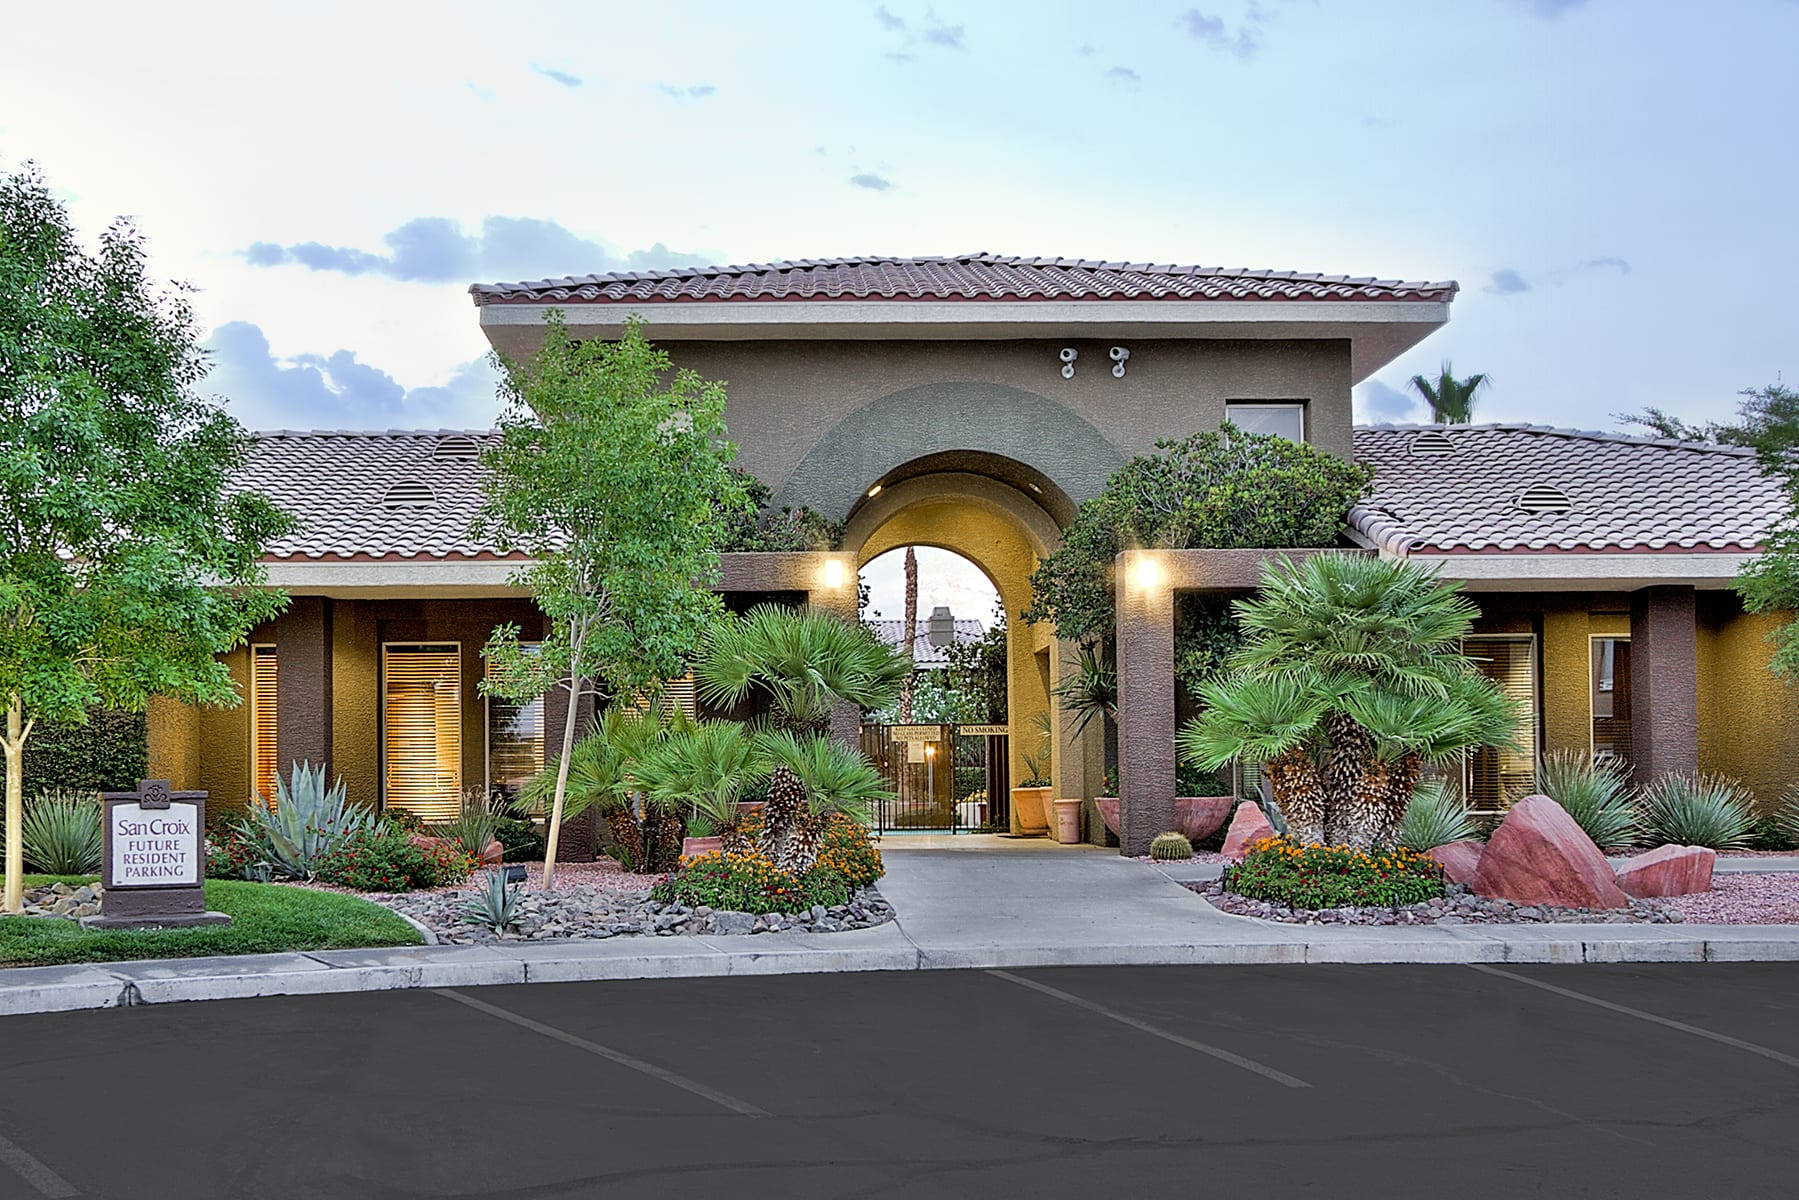 Ample parking and lush landscaping lead towards the tall entrance archways of San Croix Apartments.